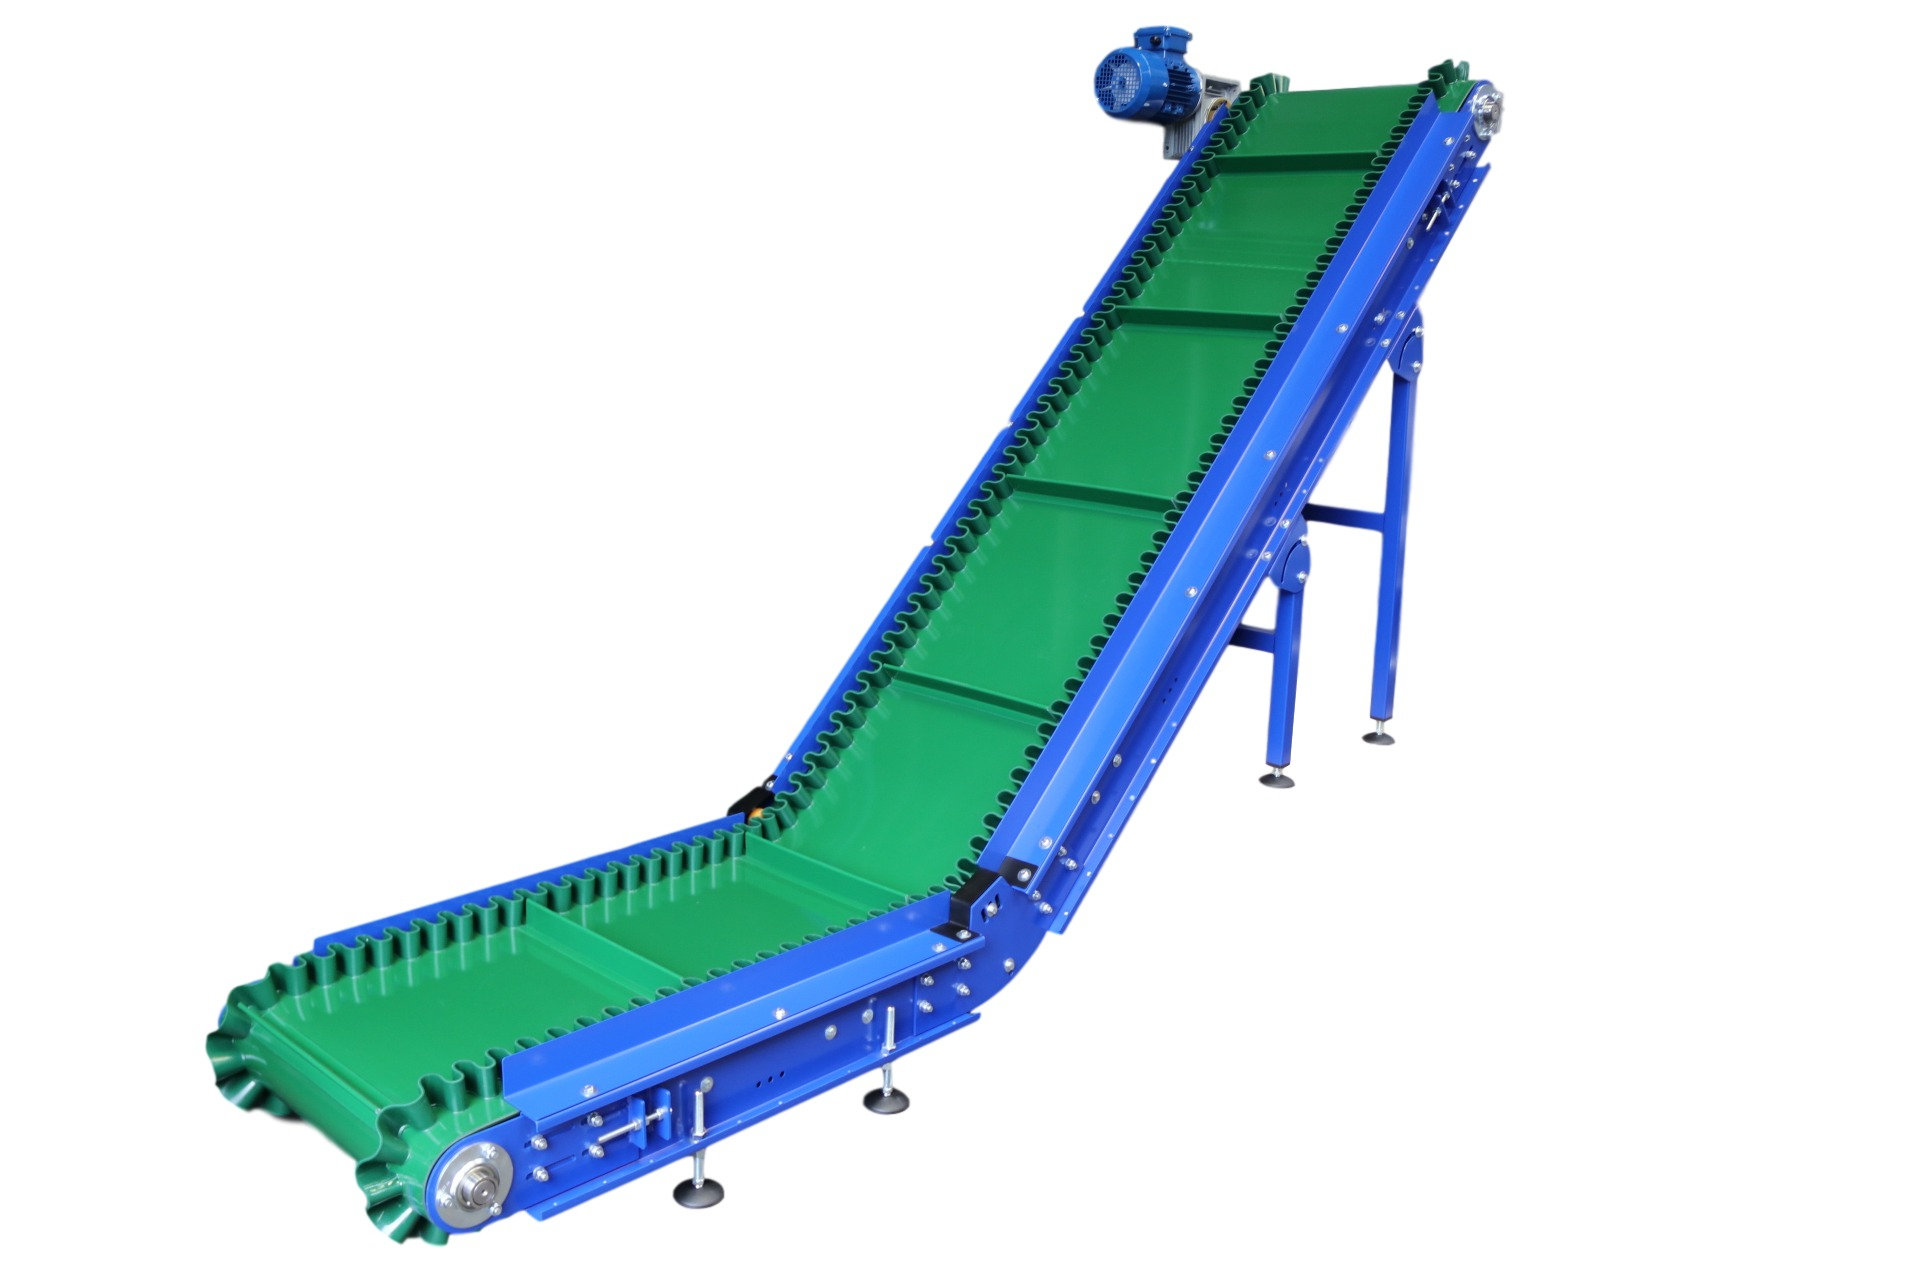 INCLINE BELT CONVEYOR INCLINE CONVEYOR INCLINE PARTS CONVEYOR INCLINE CONVEYOR BELT BELT INCLINE CONVEYOR BELT CONVEYOR MANUFACTURERS INCLINE INFEED CONVEYOR BELT